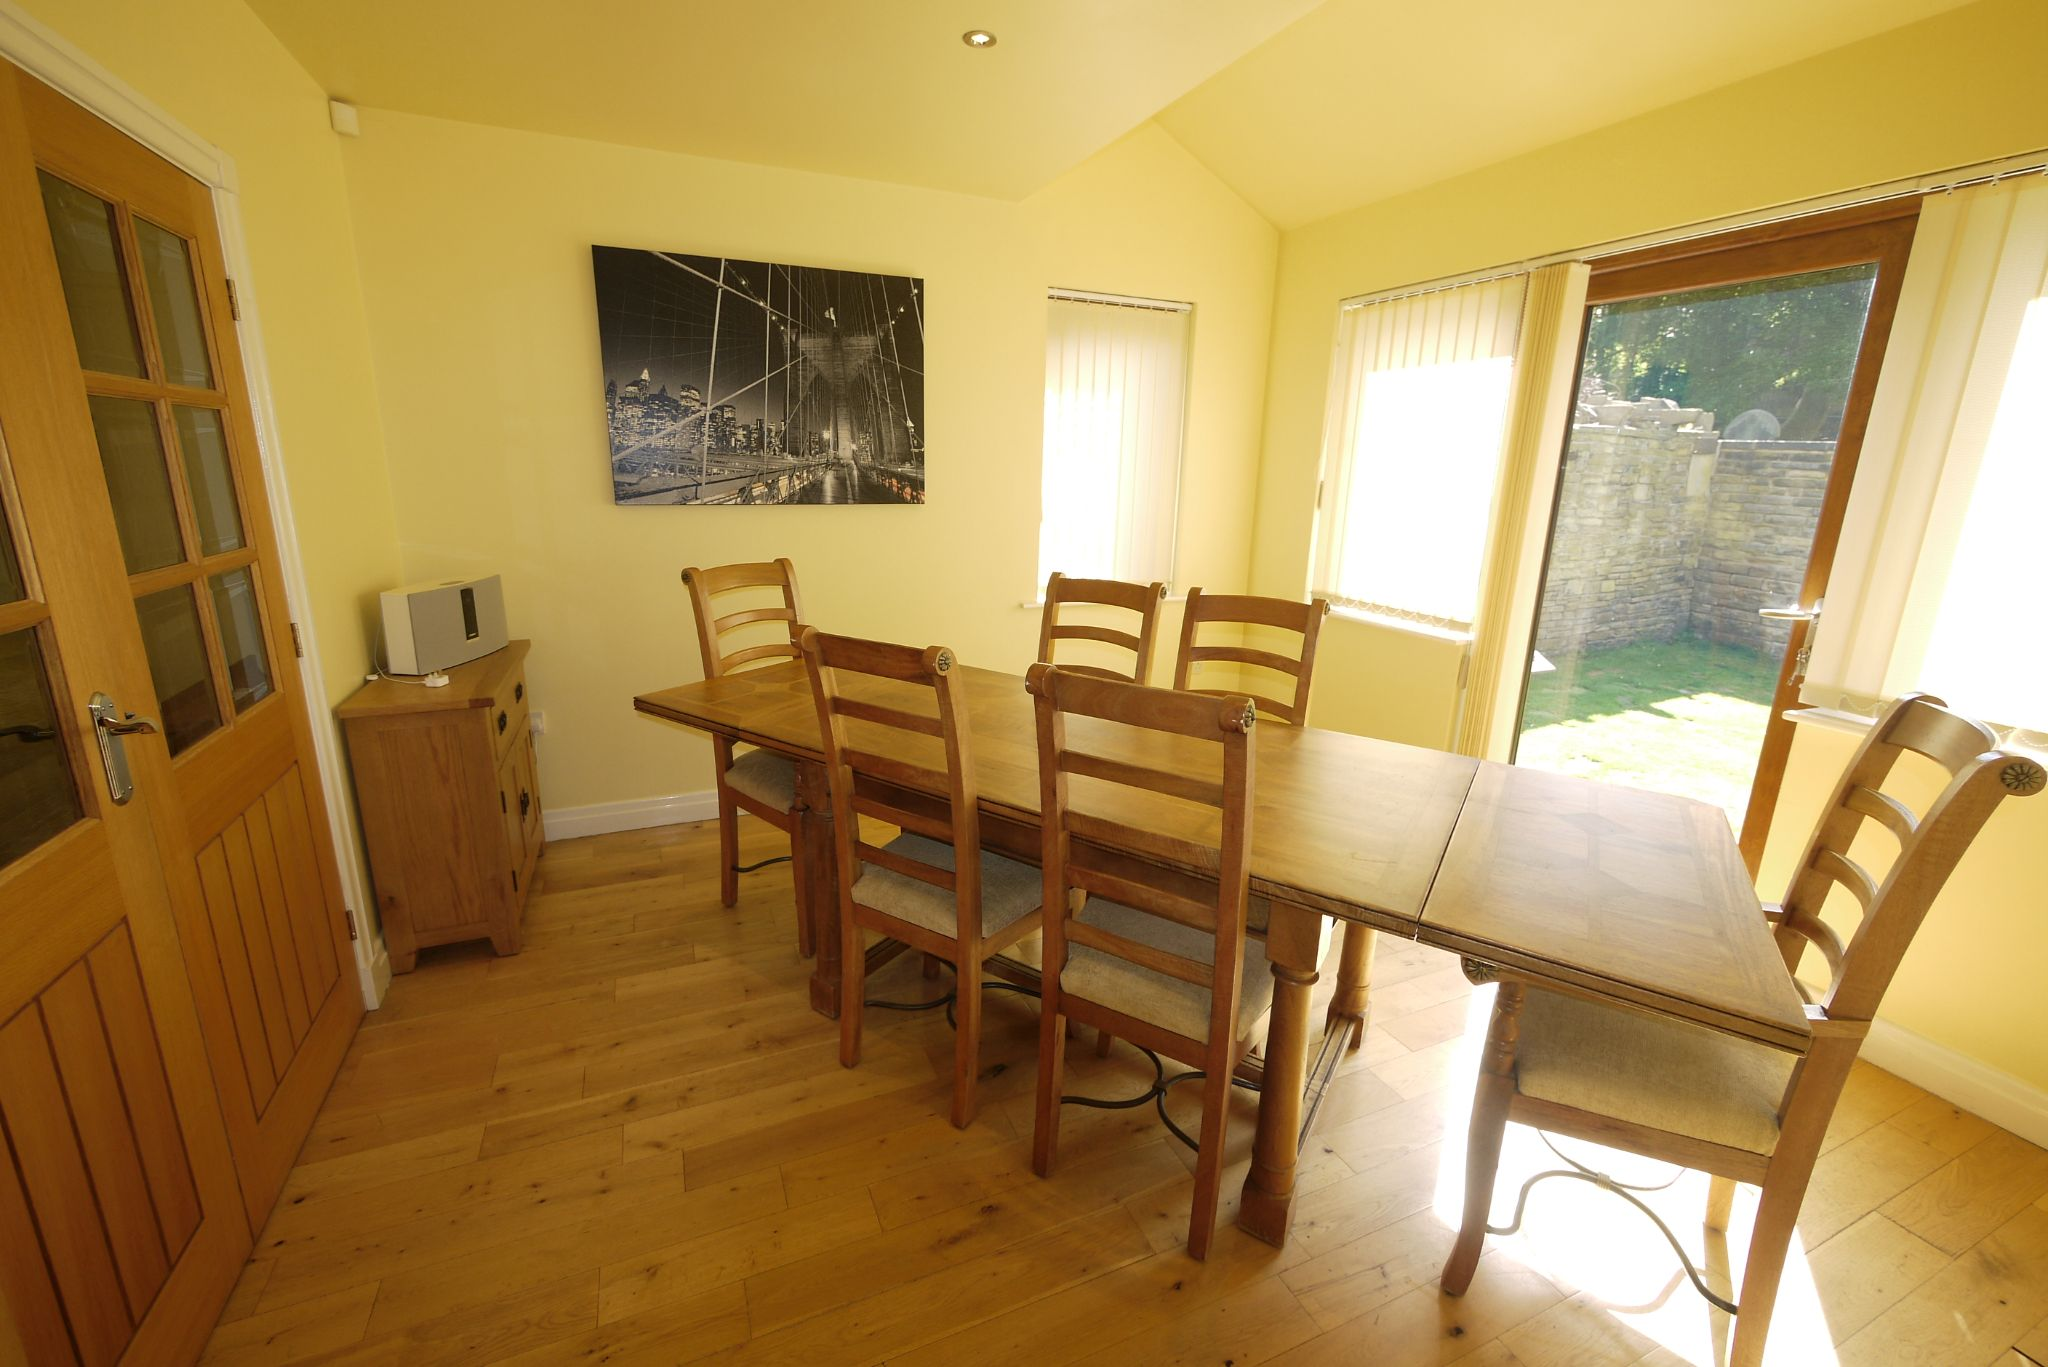 5 bedroom detached house For Sale in Brighouse - Photograph 6.